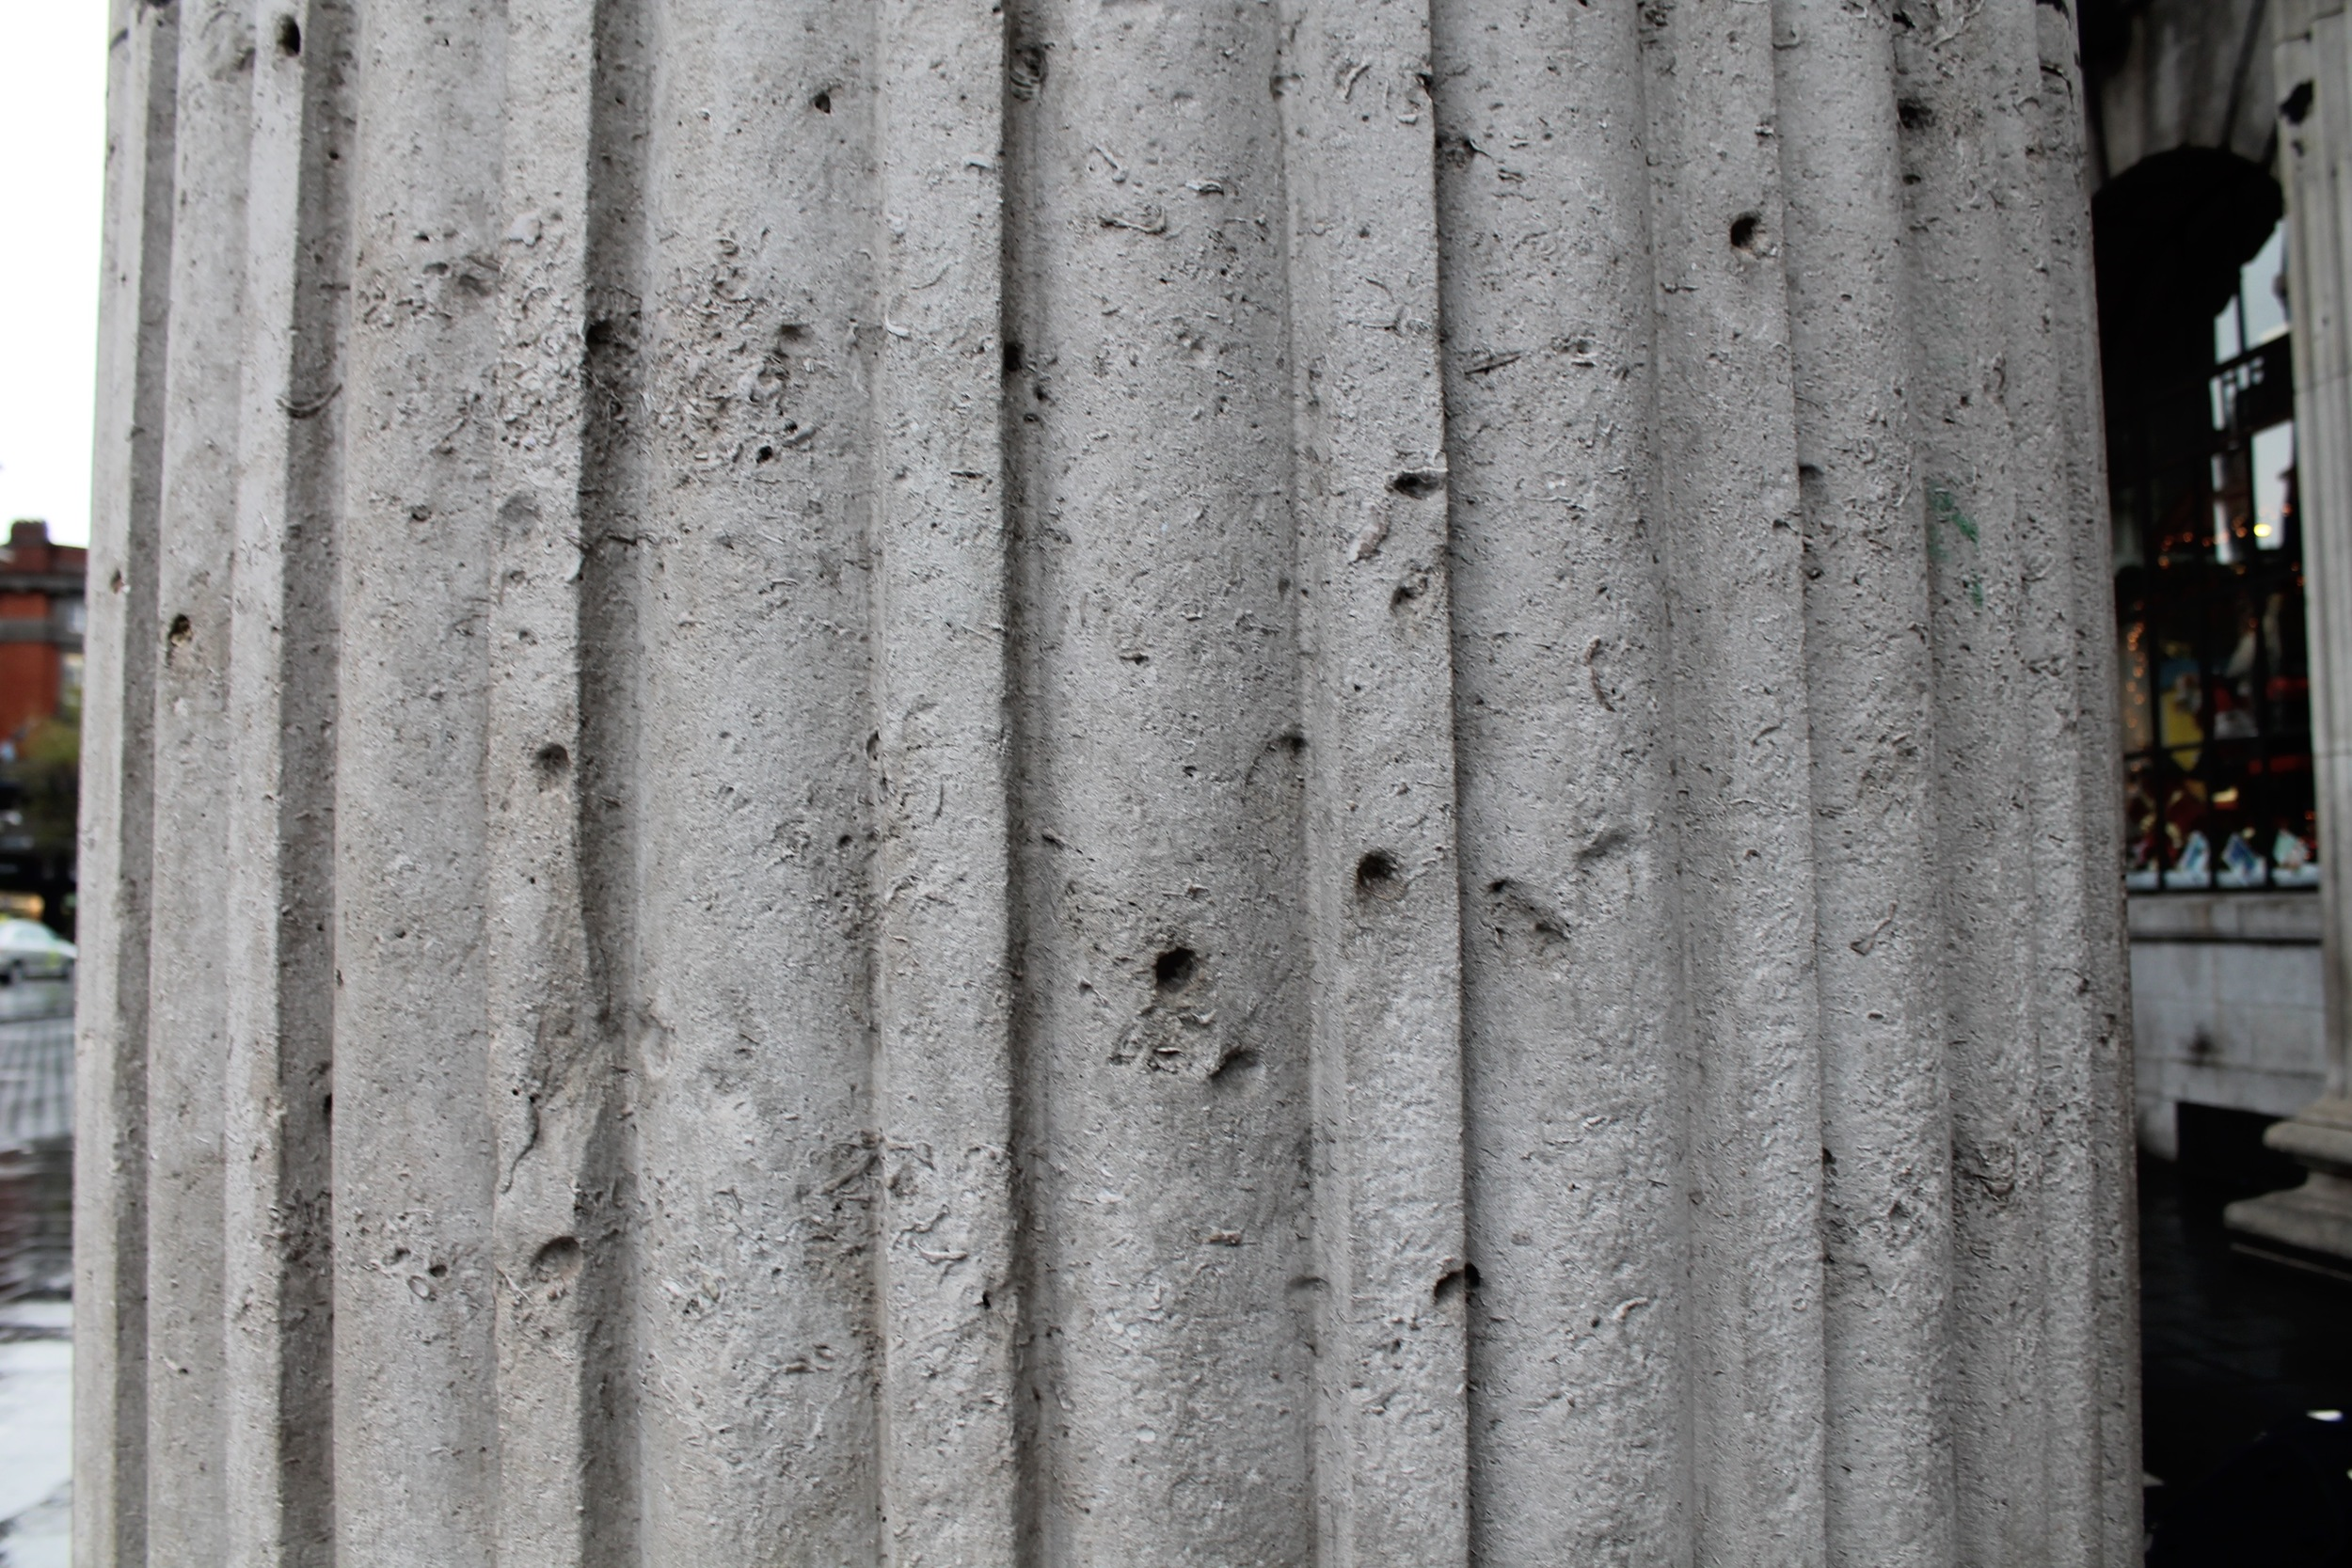 Bullet holes in the pillars outside the GPO